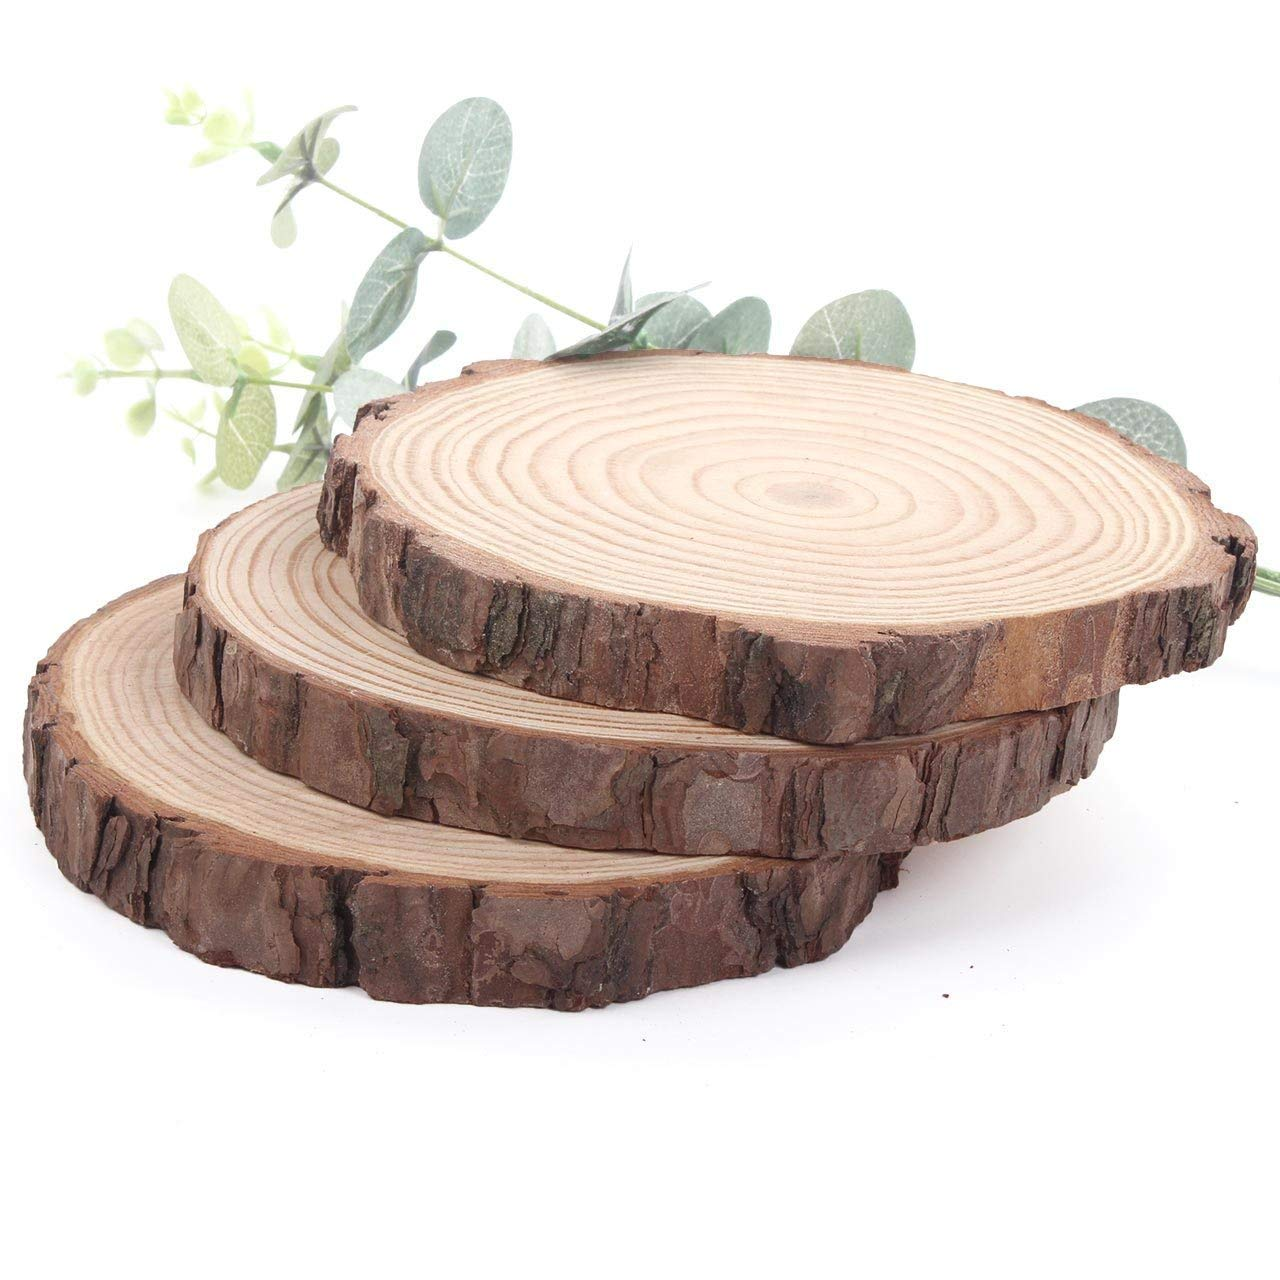 HANBEN 3pcs 4.7 5.5 Large Wood Slices with Bark for Wedding Centerpiece DIY Woodland Projects Table Chargers or Country Decor